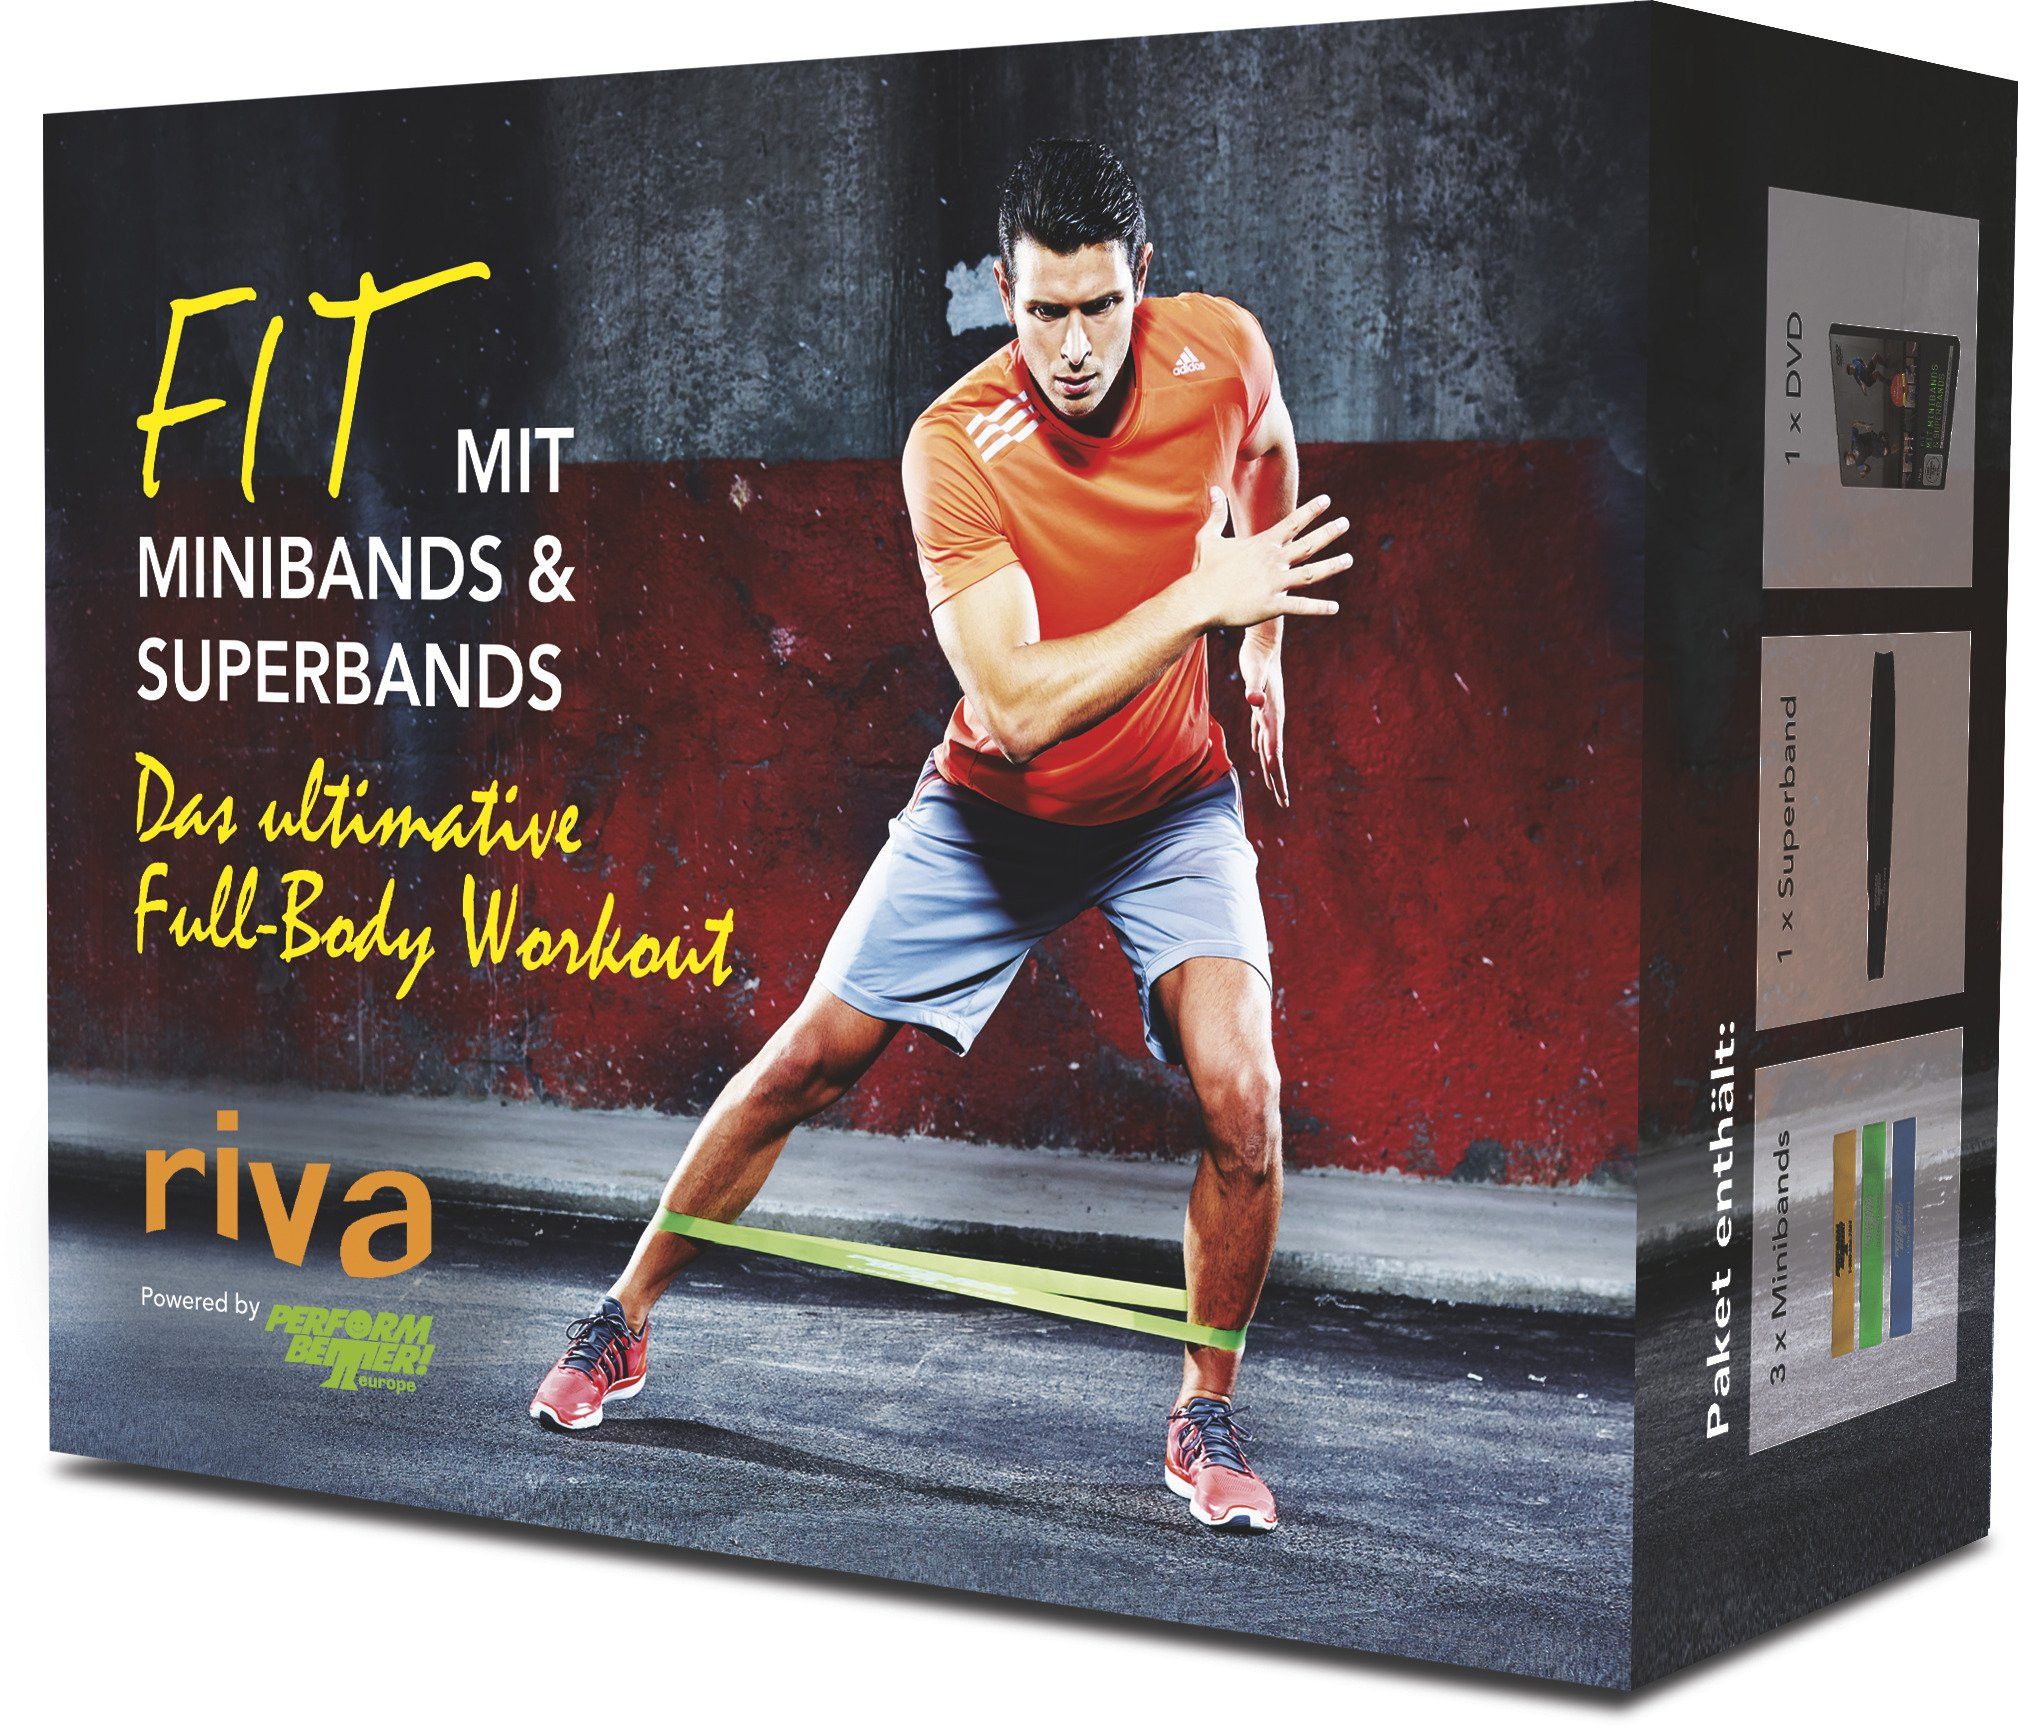 Image OfFaszien-Fitness Fit Mit Minibands & Superbands. Das Ultimative Full-Body Workout